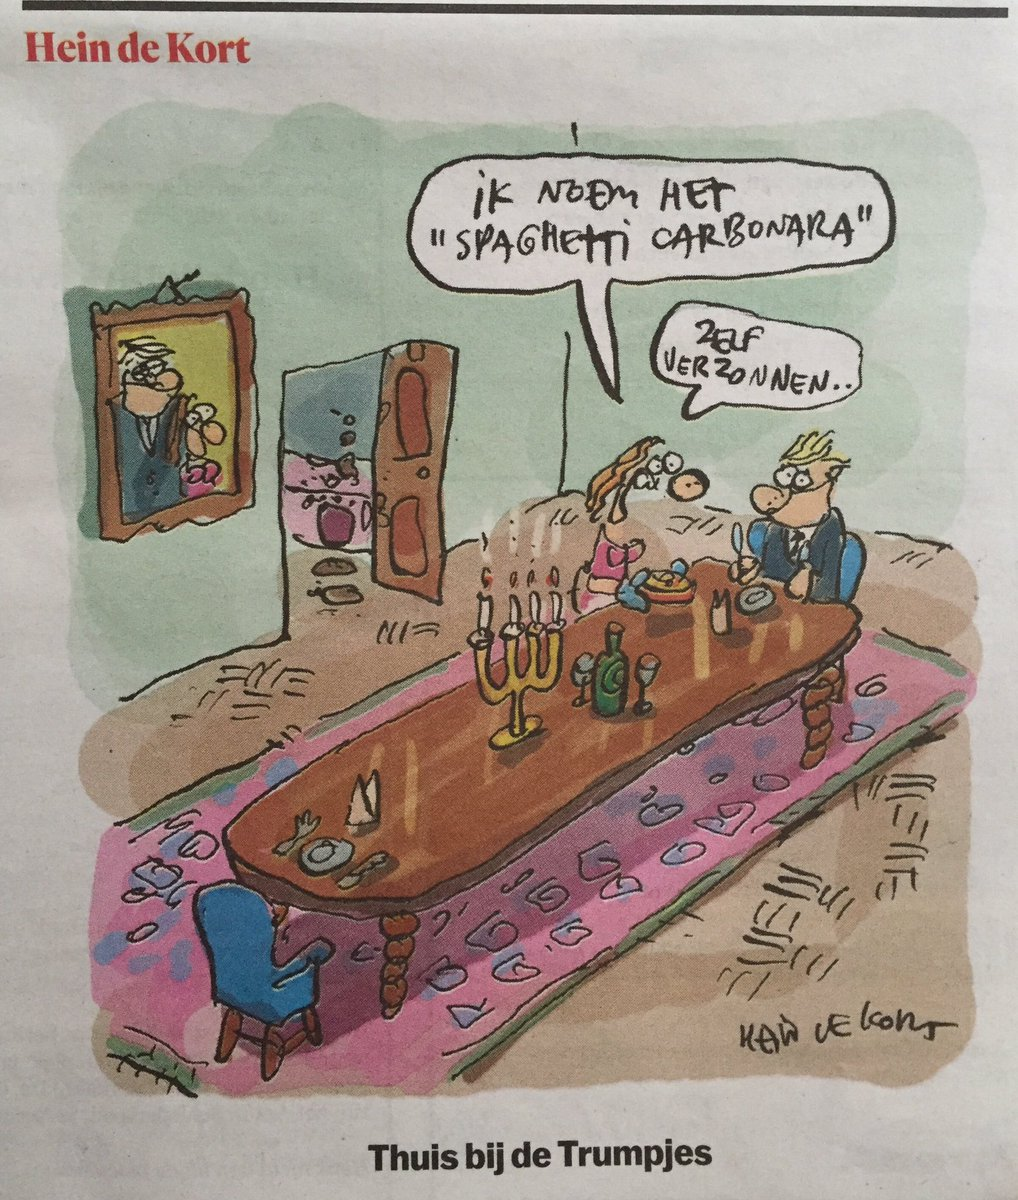 #parool #heindekort #carbonara https://t.co/PMYCQQMxMX